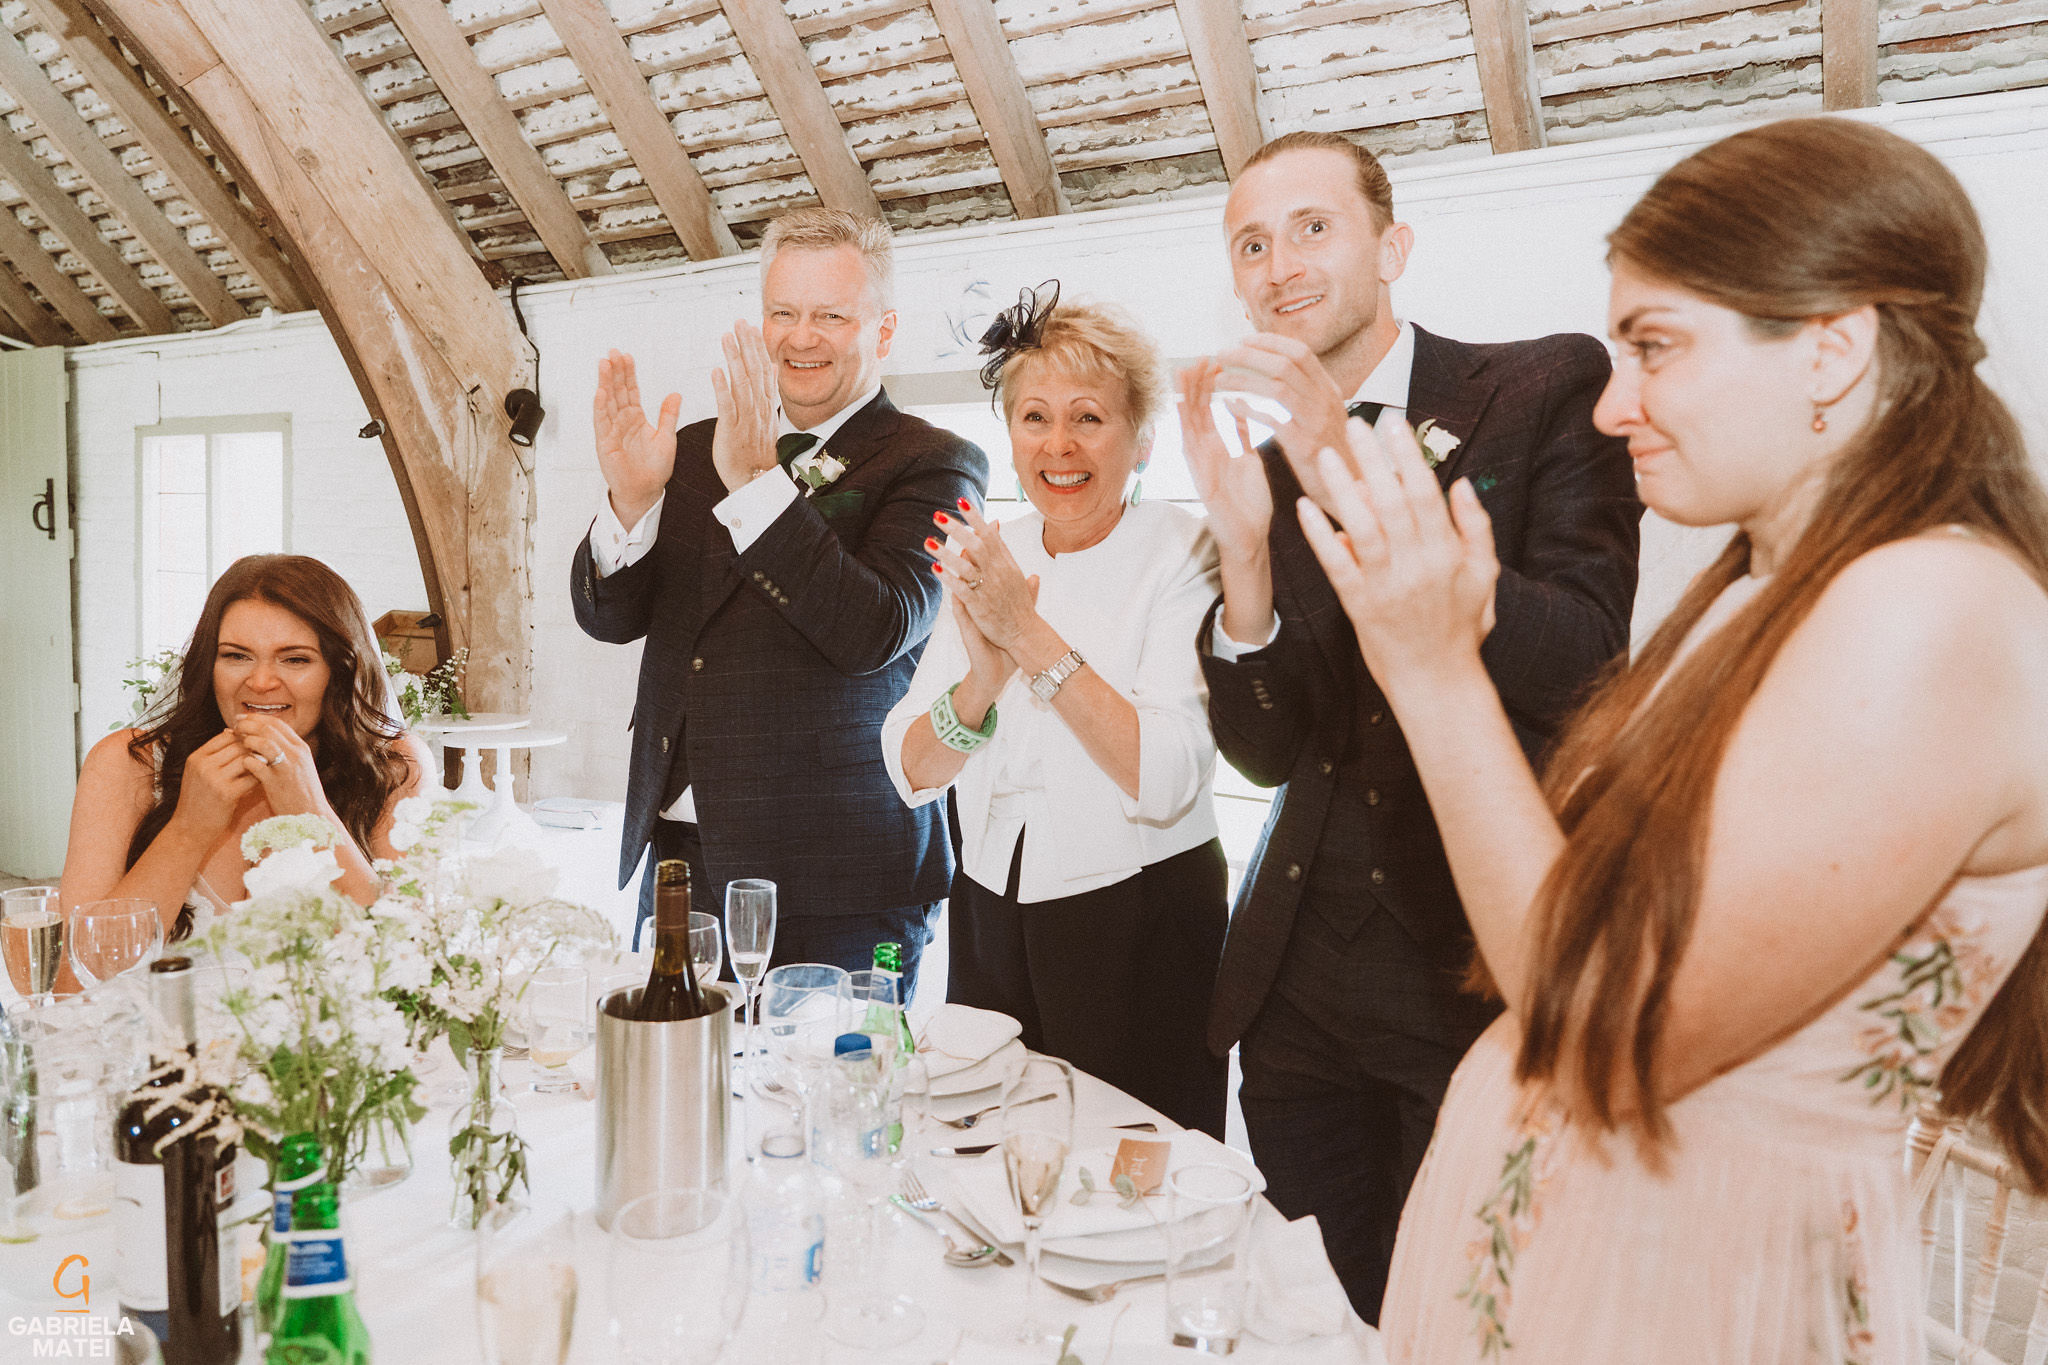 wedding guests clapping of happiness during wedding speeches at South Stoke Barn wedding venue in Arundel by gabriela matei sussex photographer